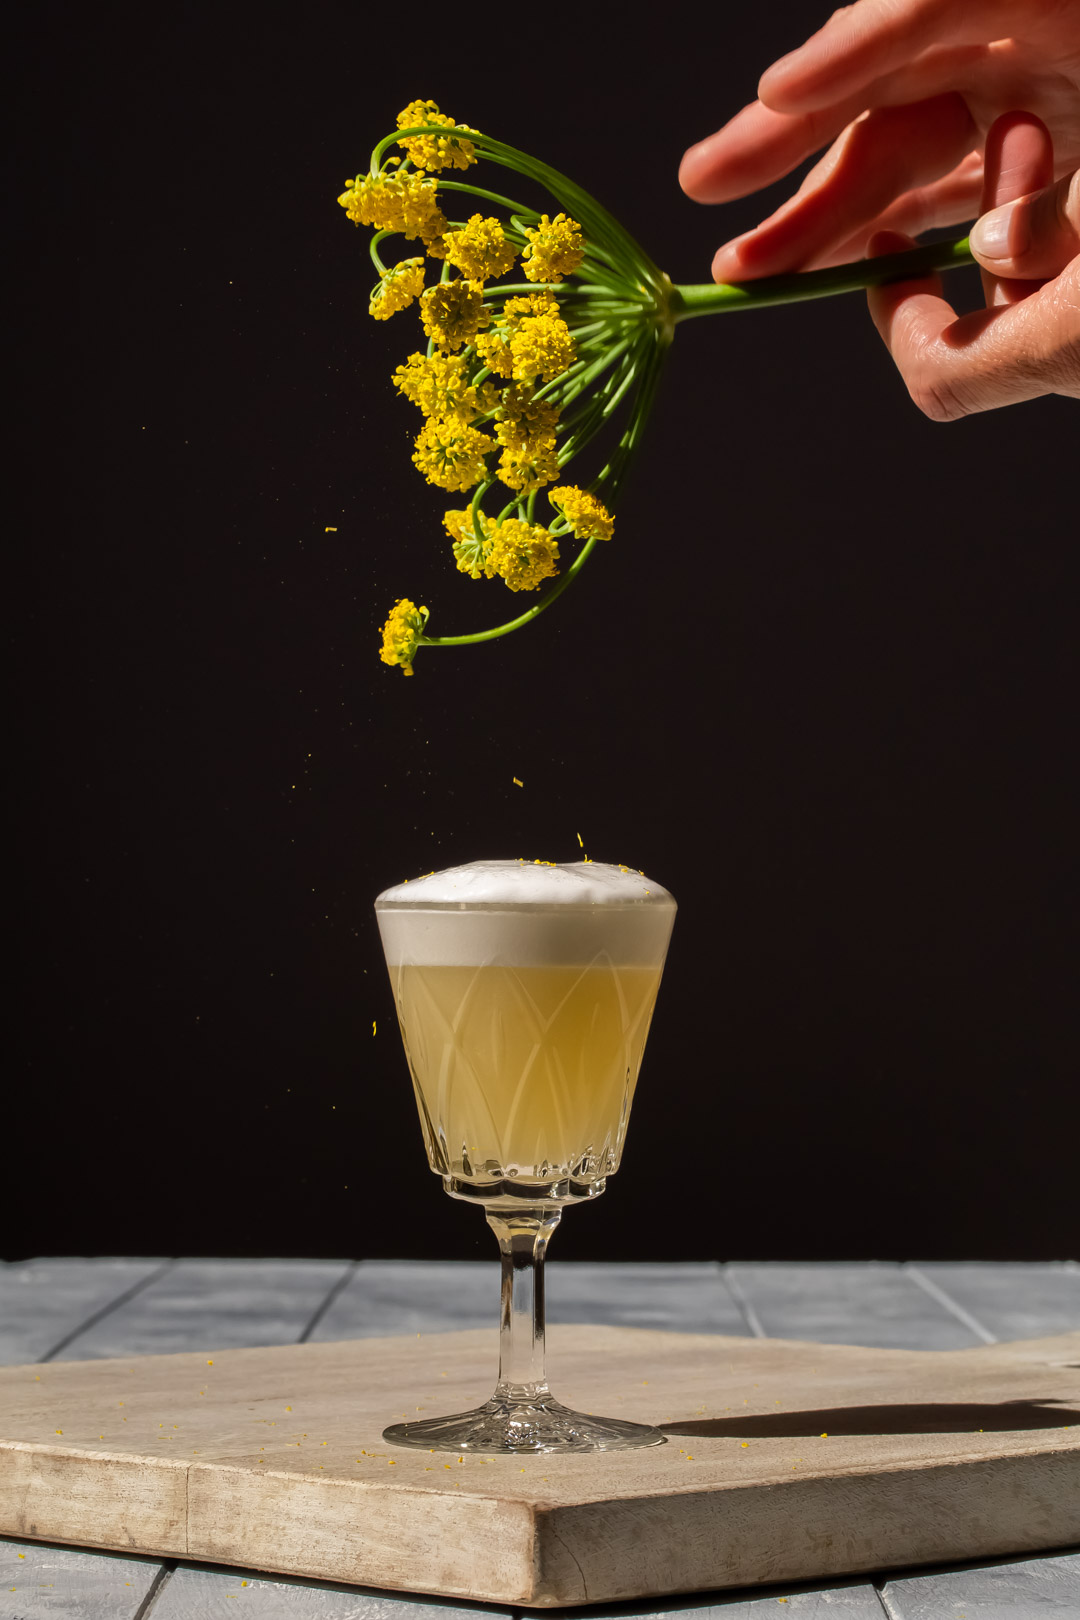 garnishing fennel flower silver sour with fennel pollen